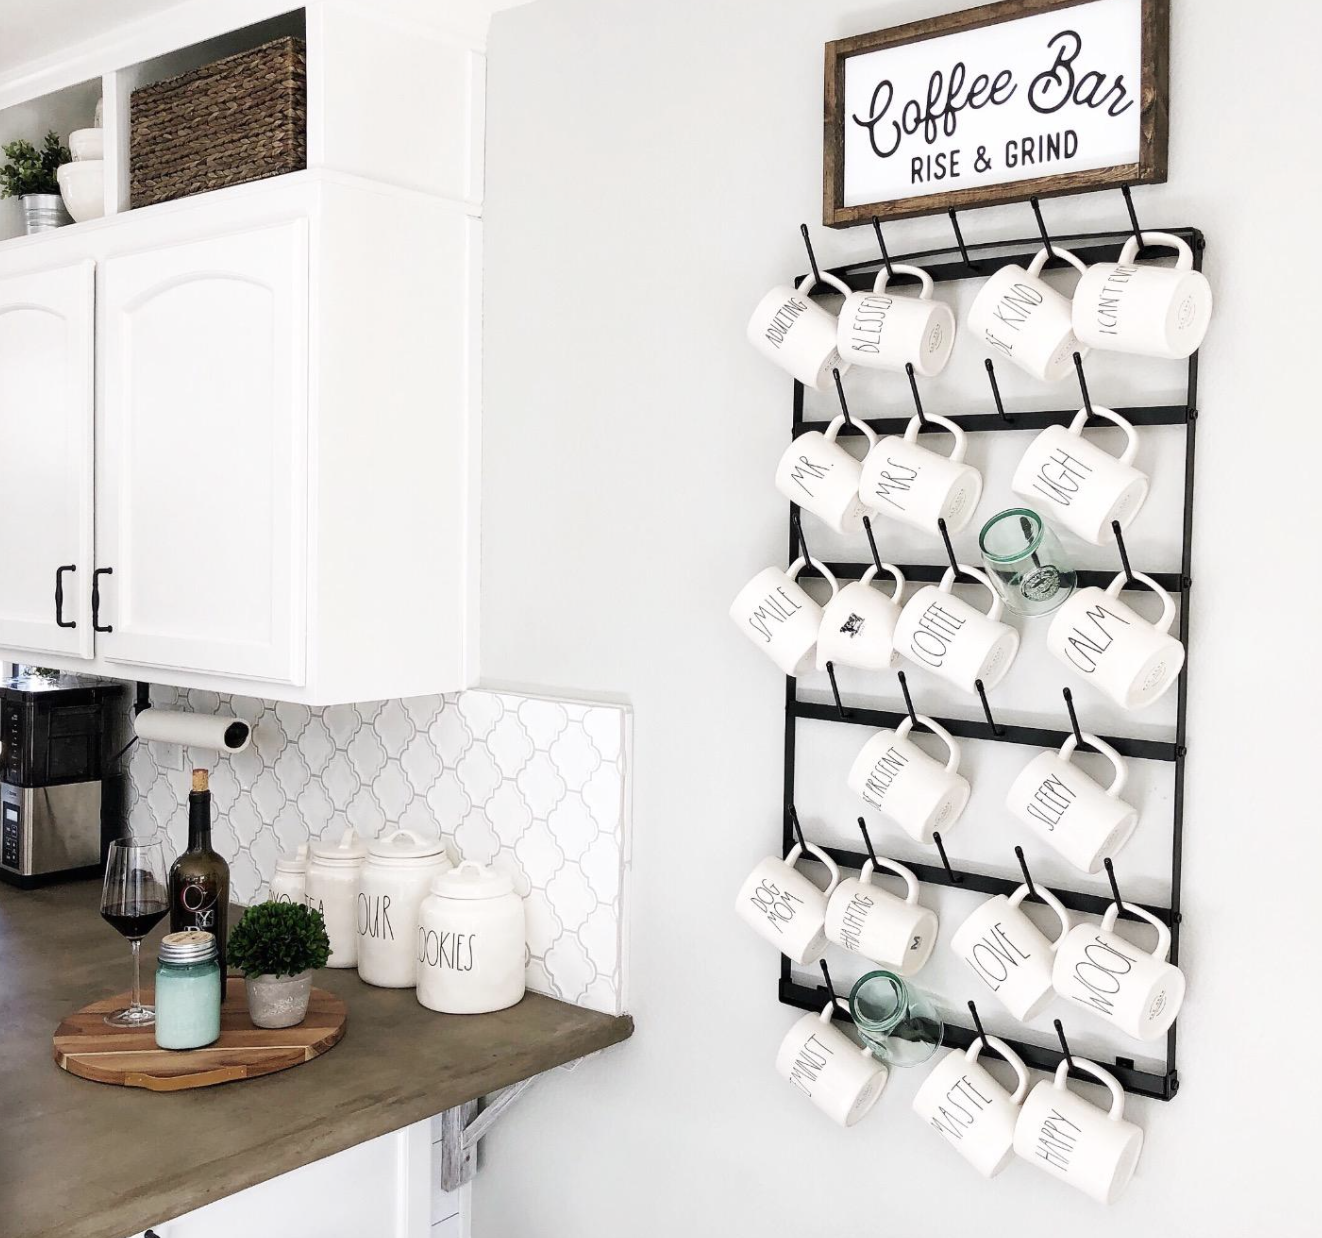 reviewer image of the black rack hung on wall holding tons of mugs